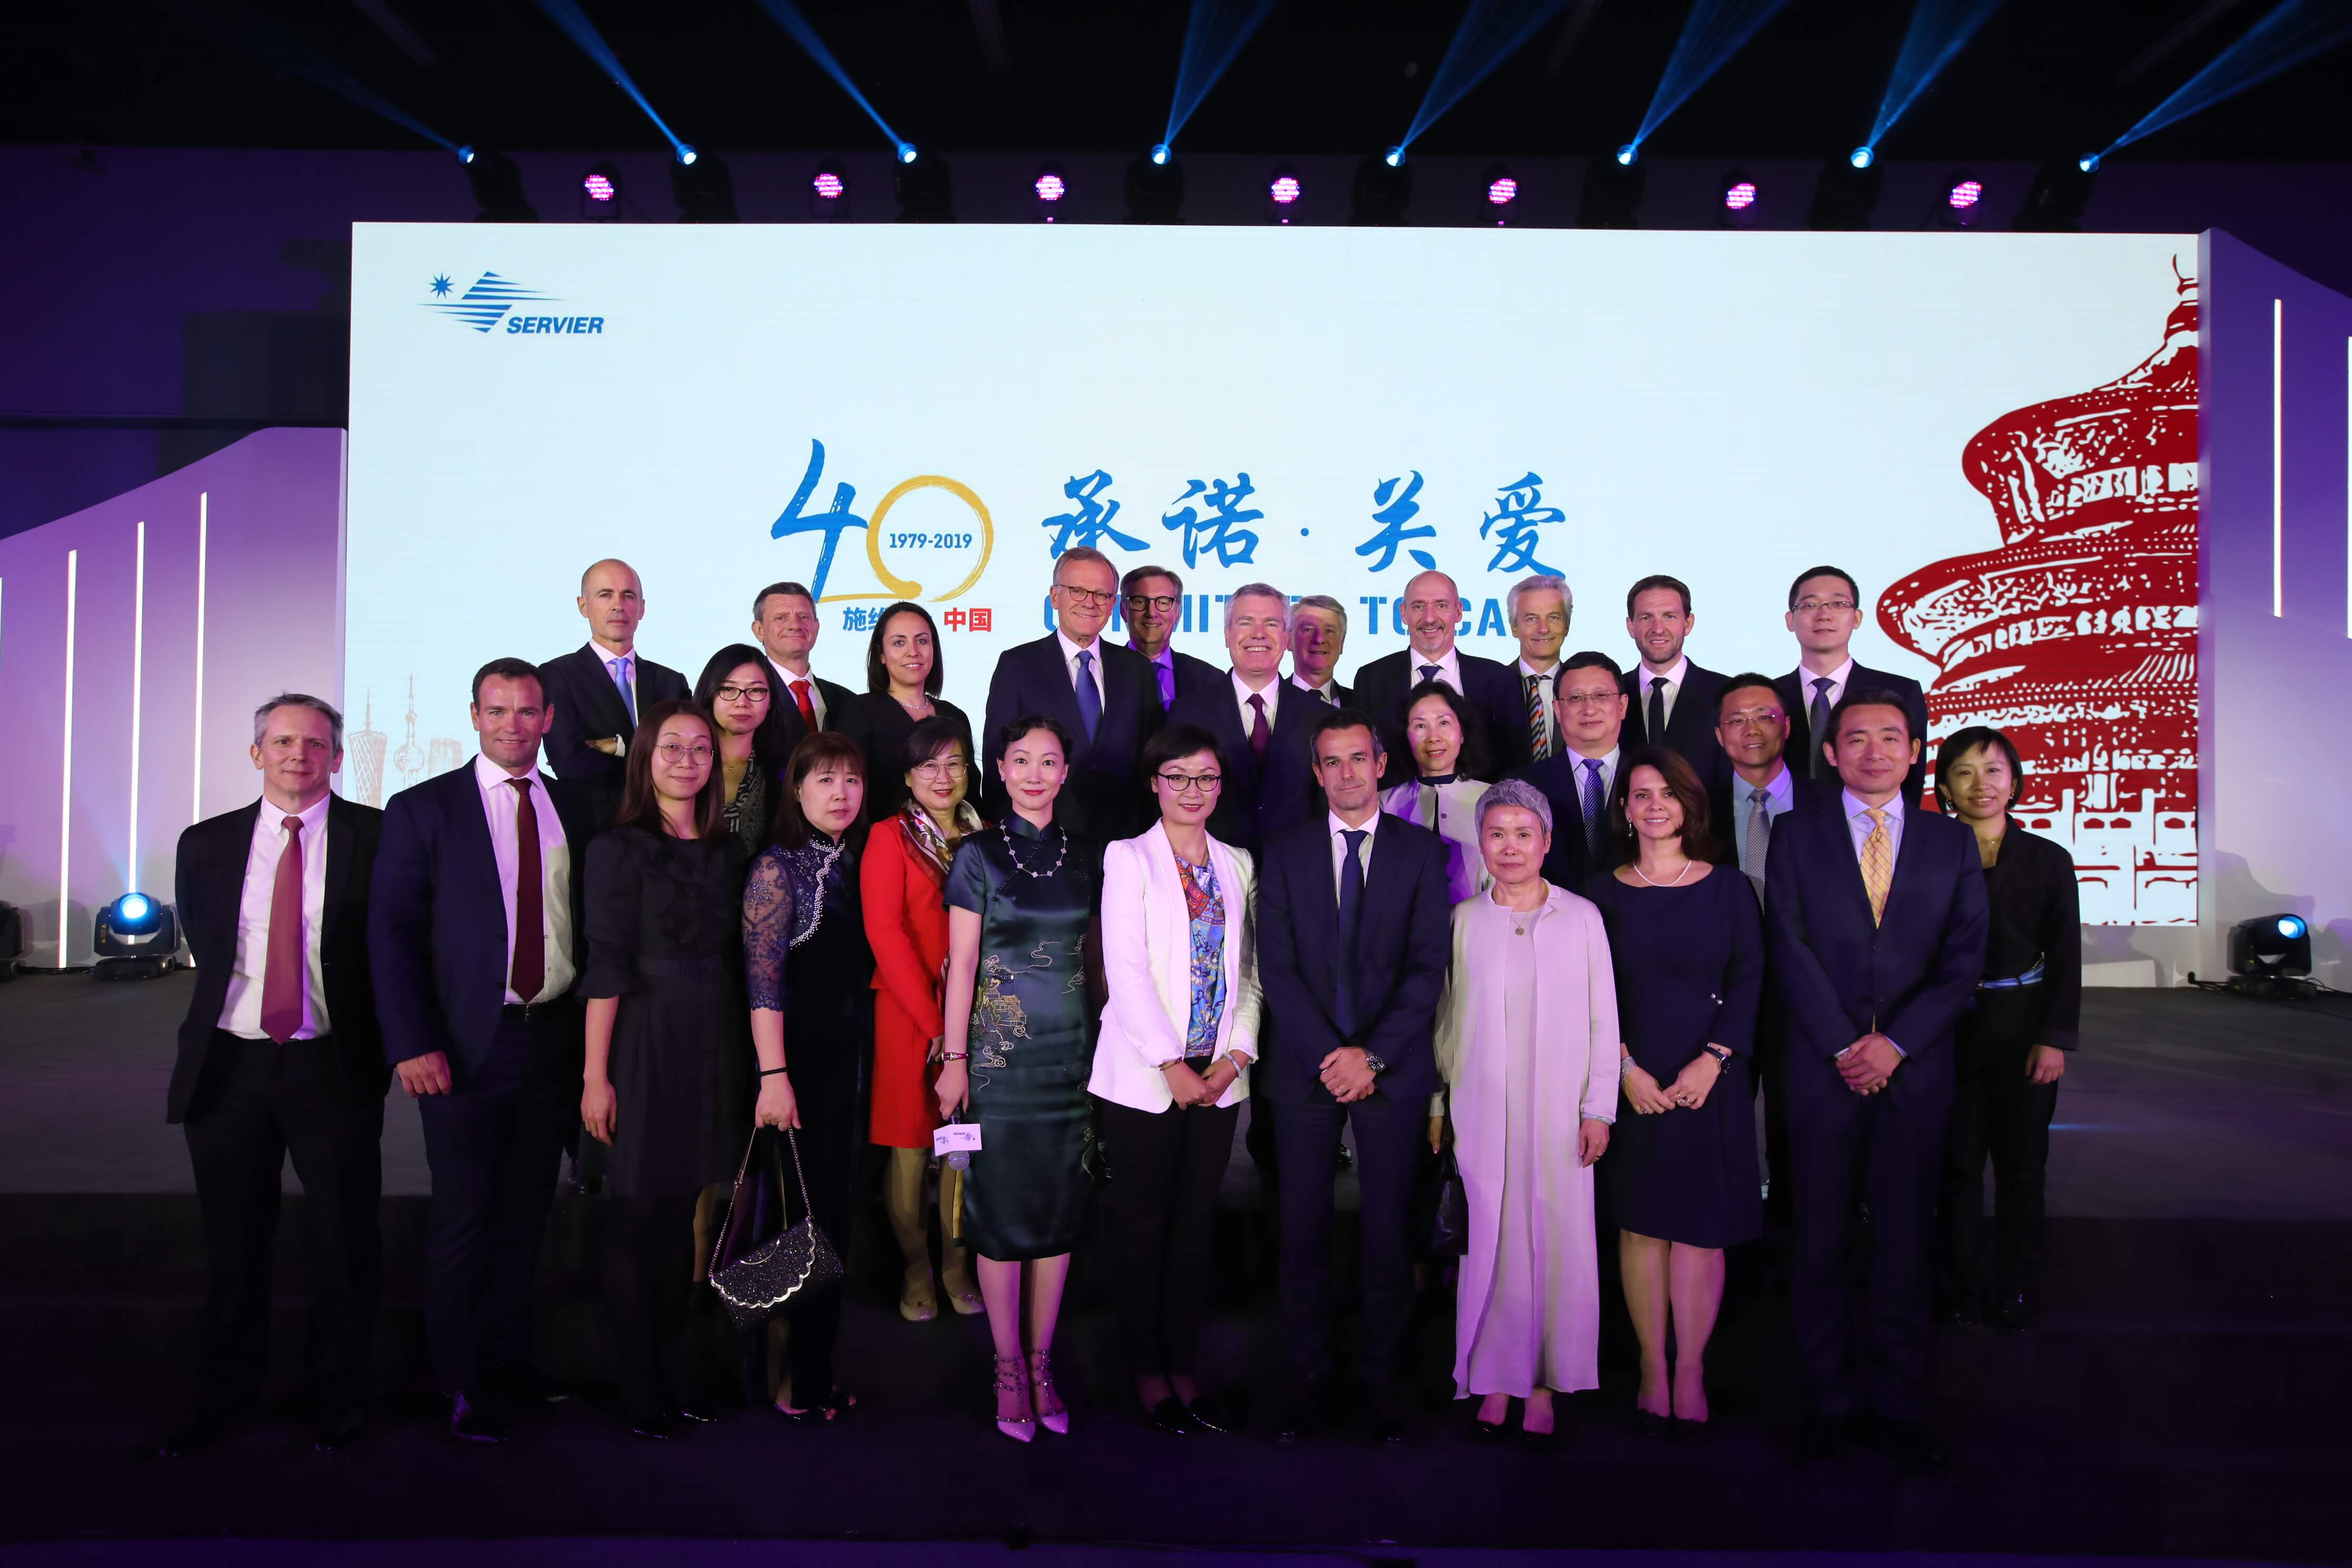 Servier China: Committed to Care for 40 Years - Servier